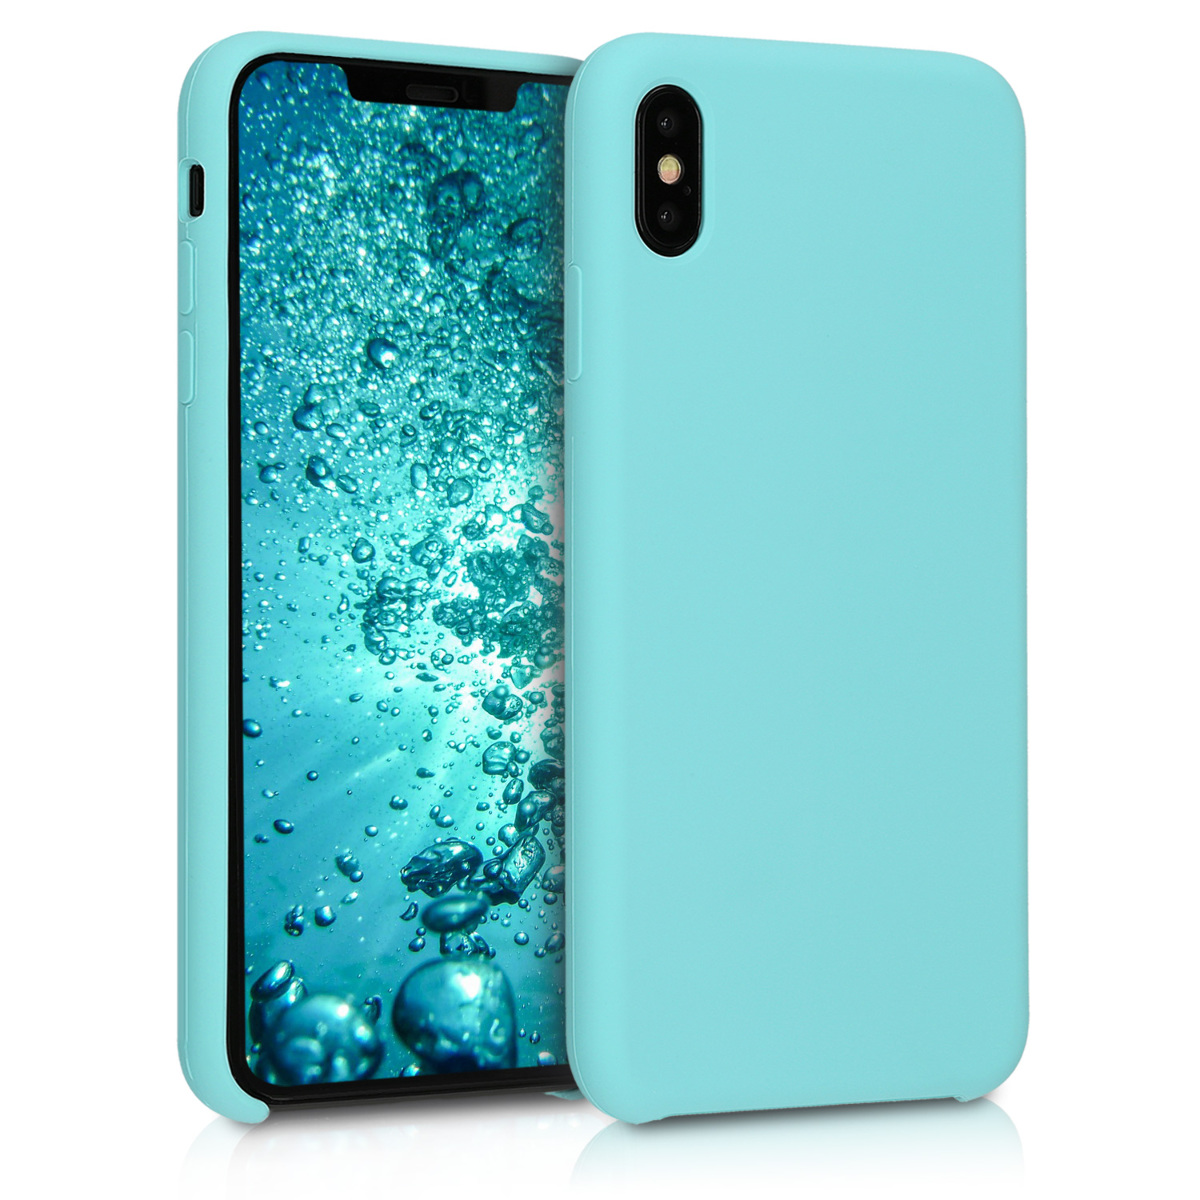 KW Θήκη Σιλικόνης iPhone XS Max - Soft Flexible Rubber Protective Cover - Mint Matte - (45909.71)